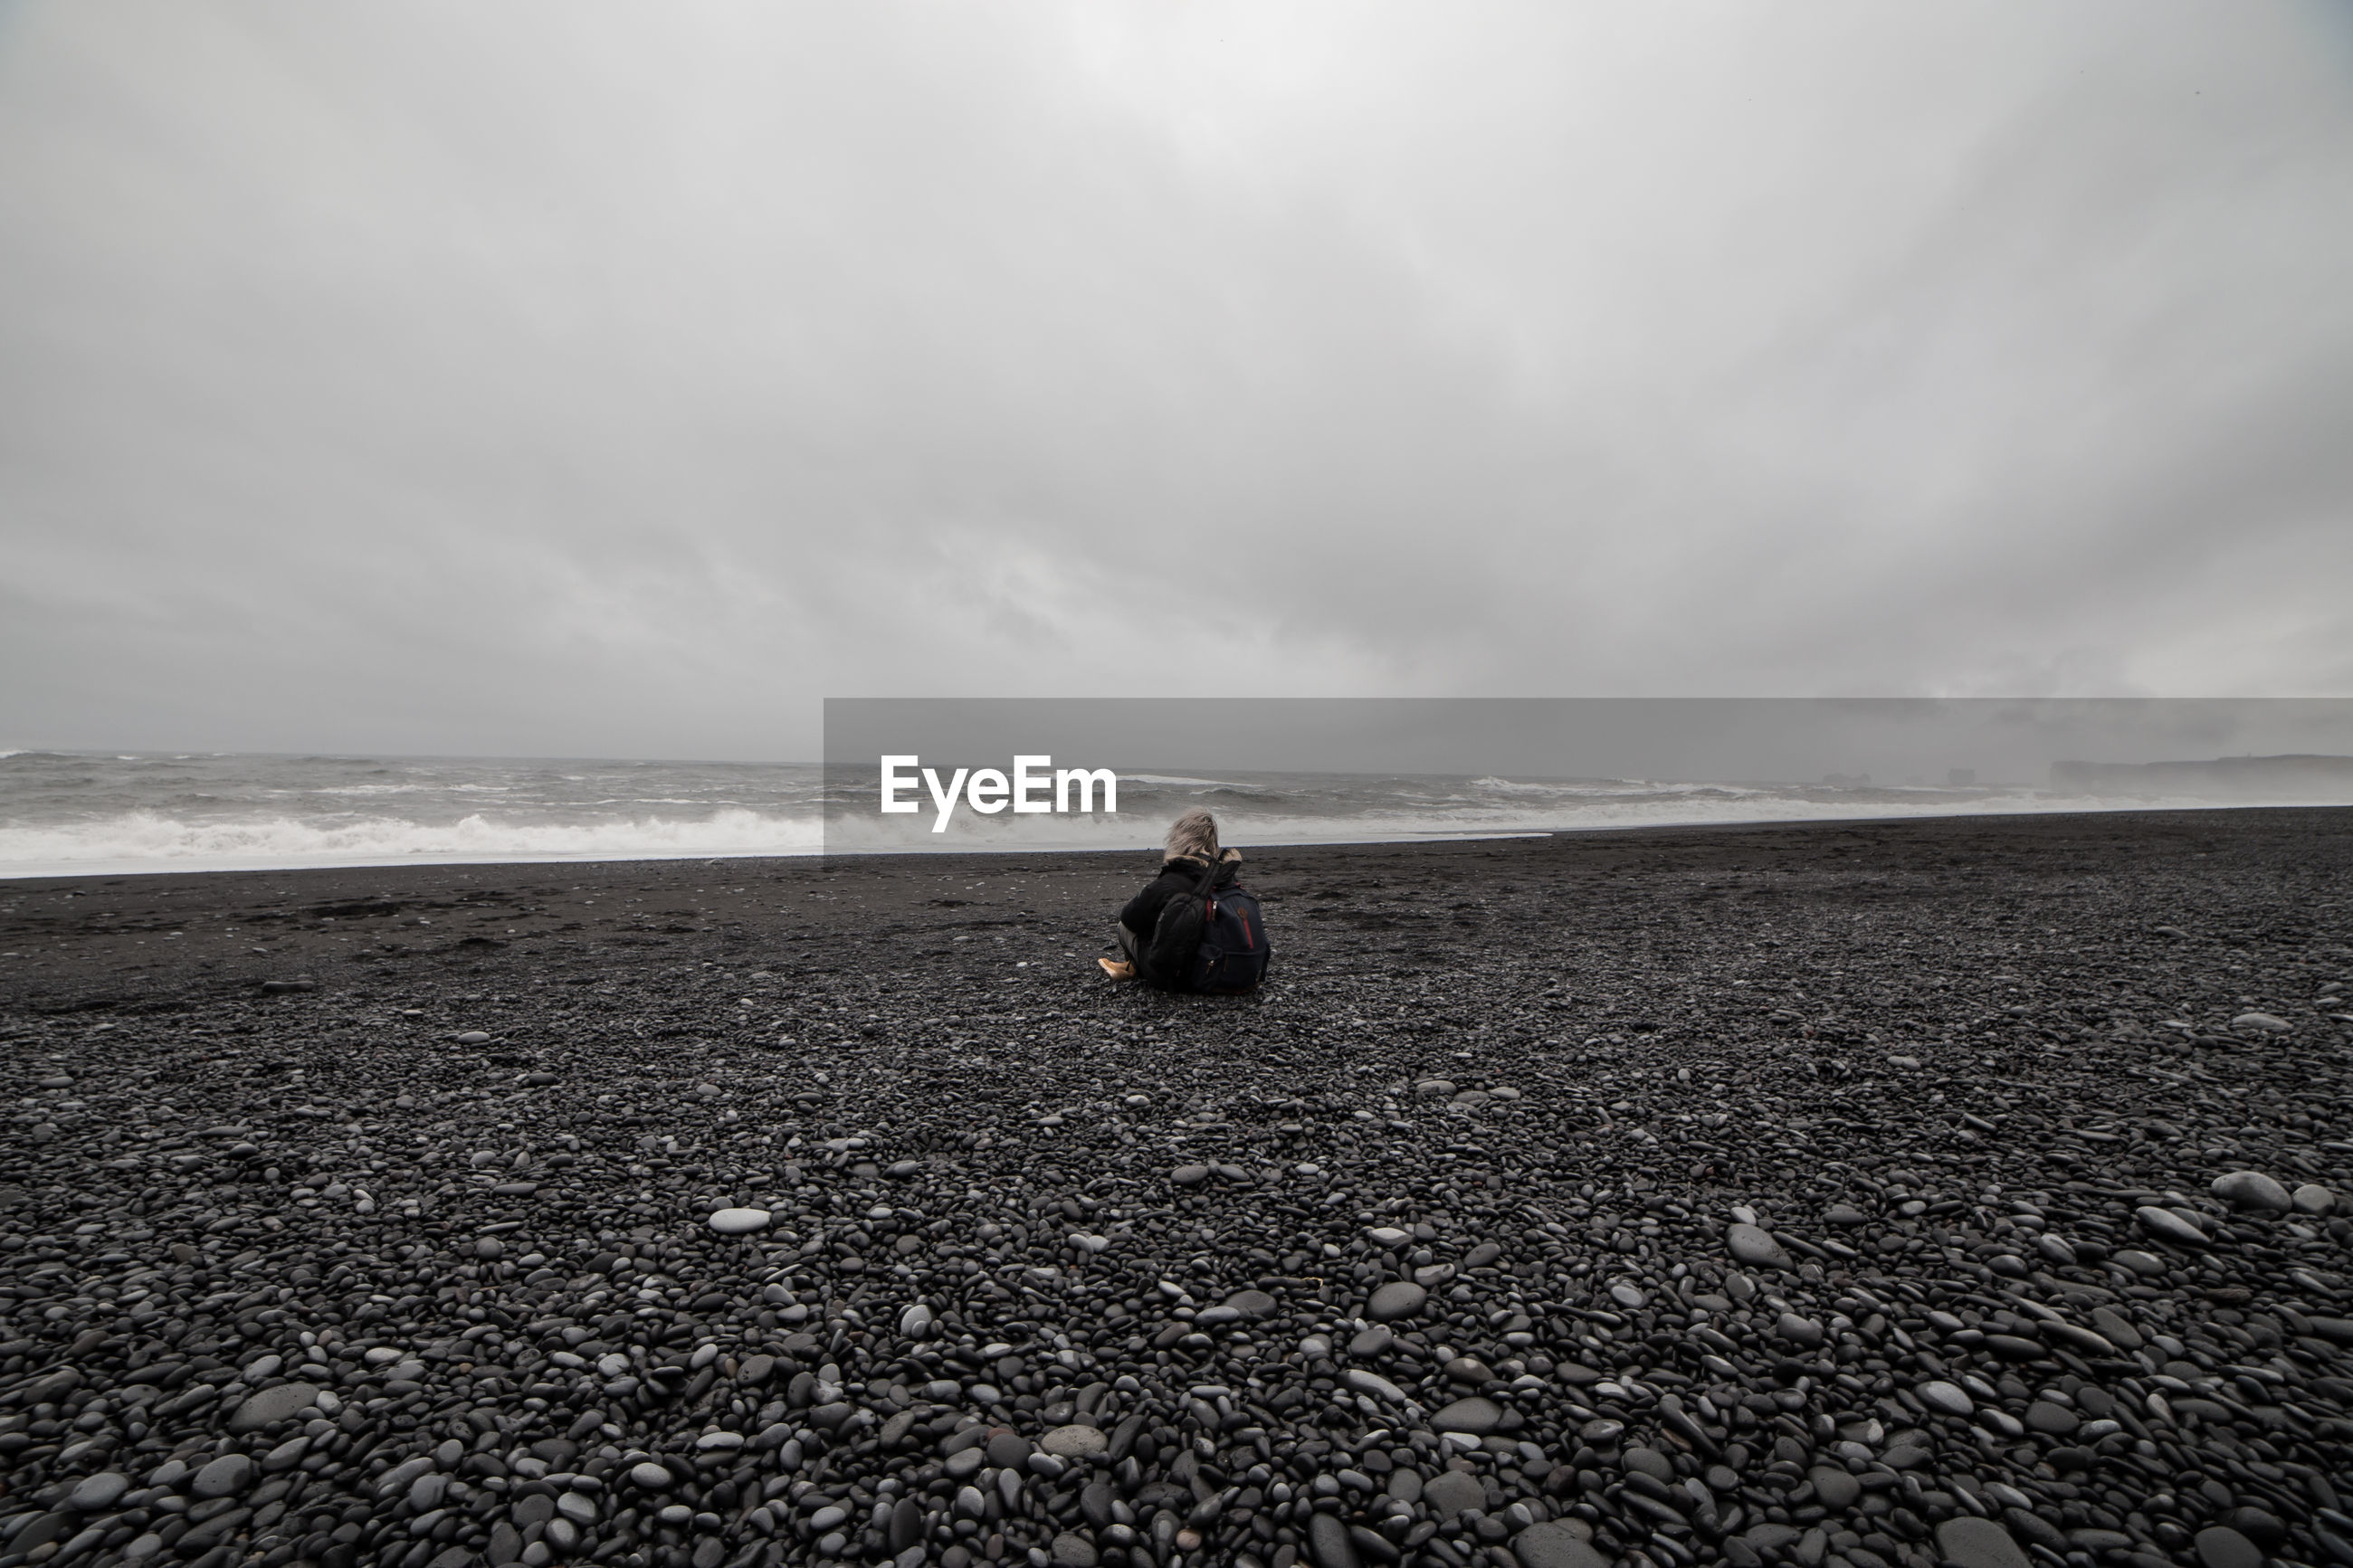 Rear view of woman sitting on pebbles at beach against sky